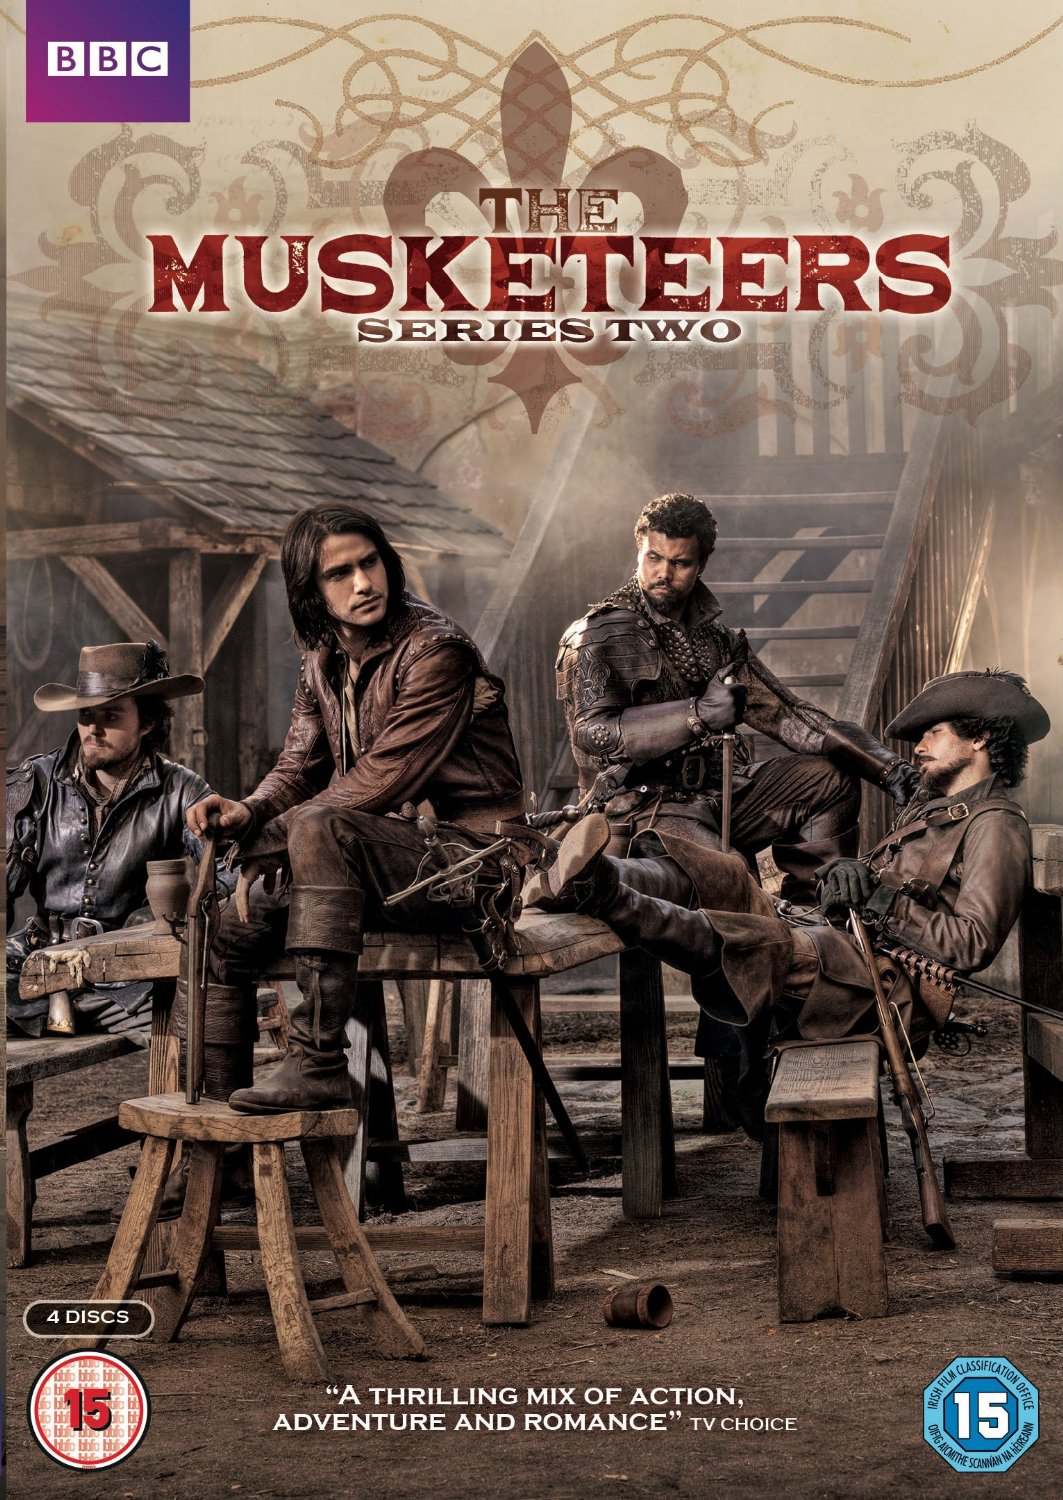 The Musketeers Series 2